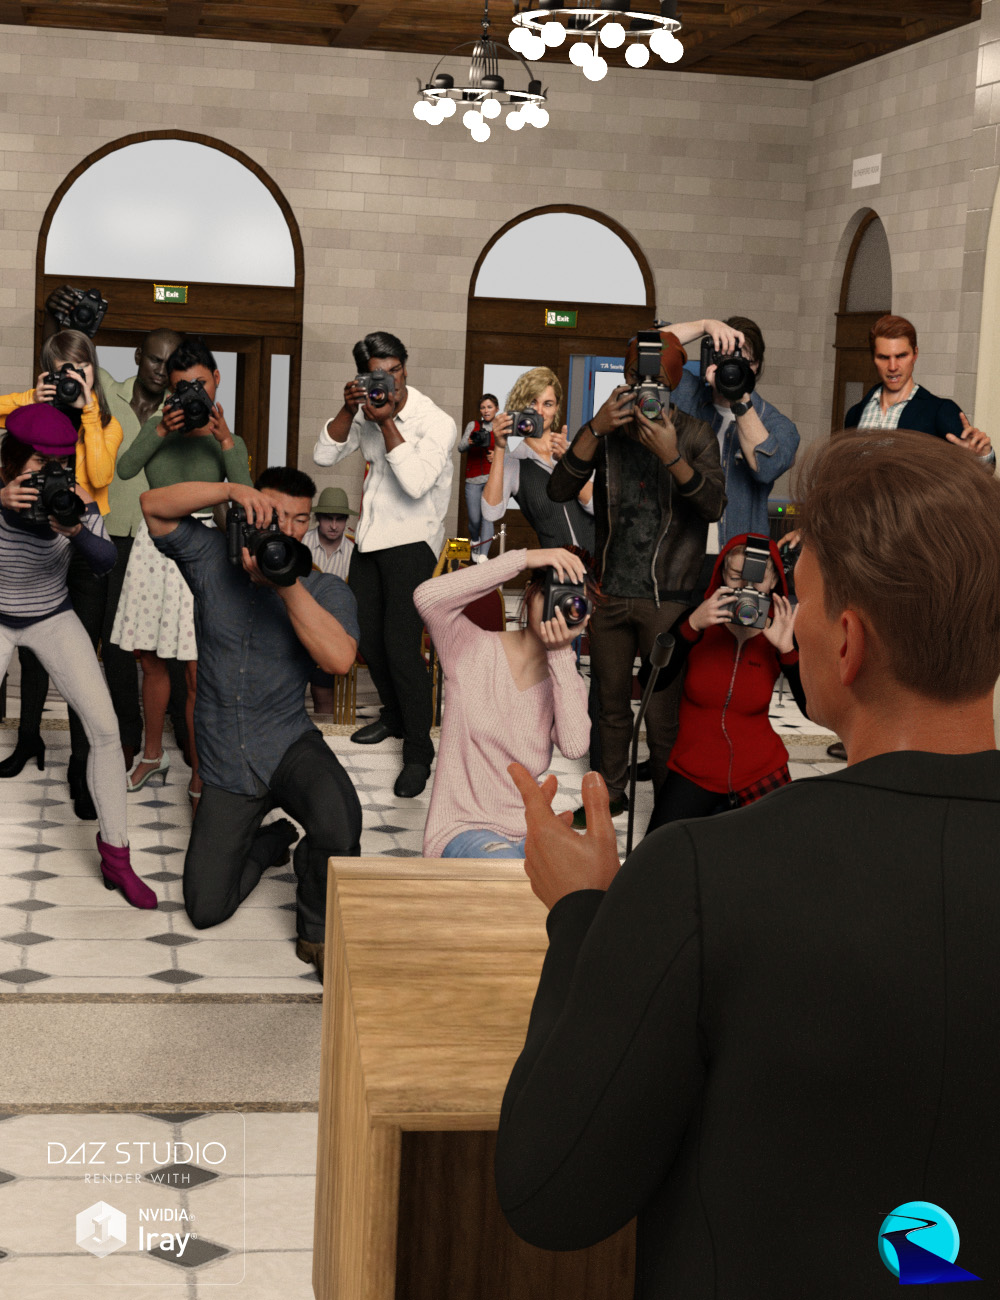 Now-Crowd Billboards - Paparazzi Photographers by: RiverSoft Art, 3D Models by Daz 3D